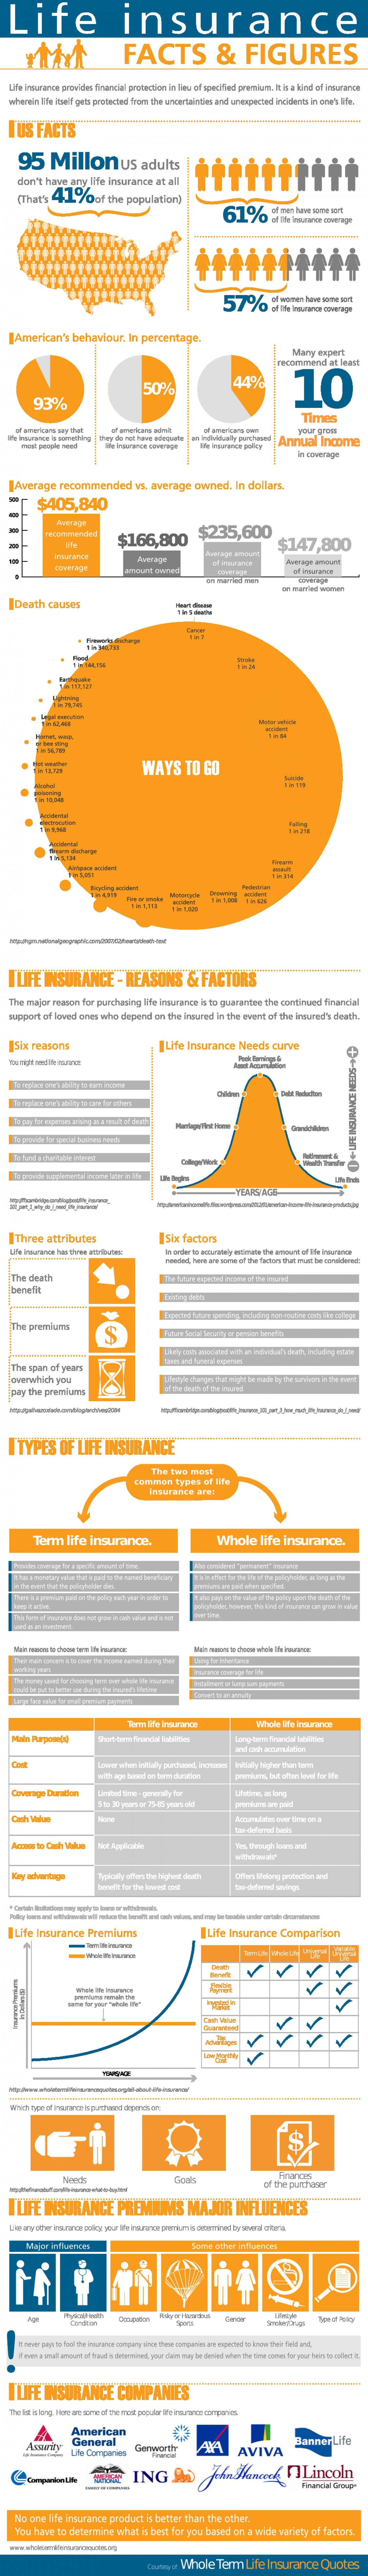 Life insurance facts figures visually life